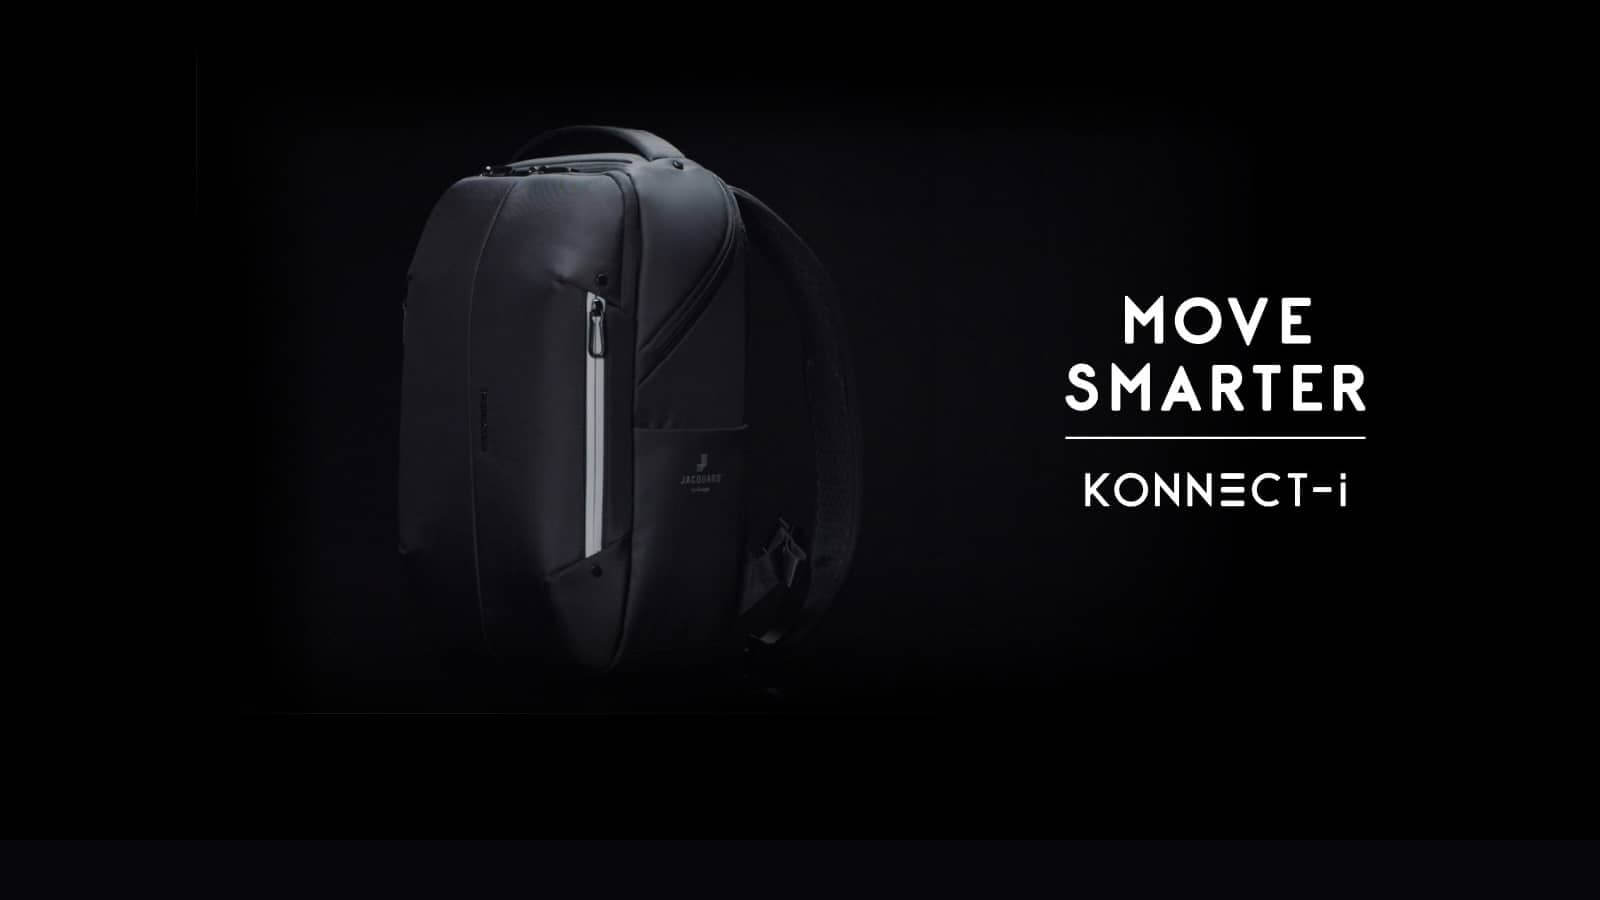 Move SMARTER | Konnect-i